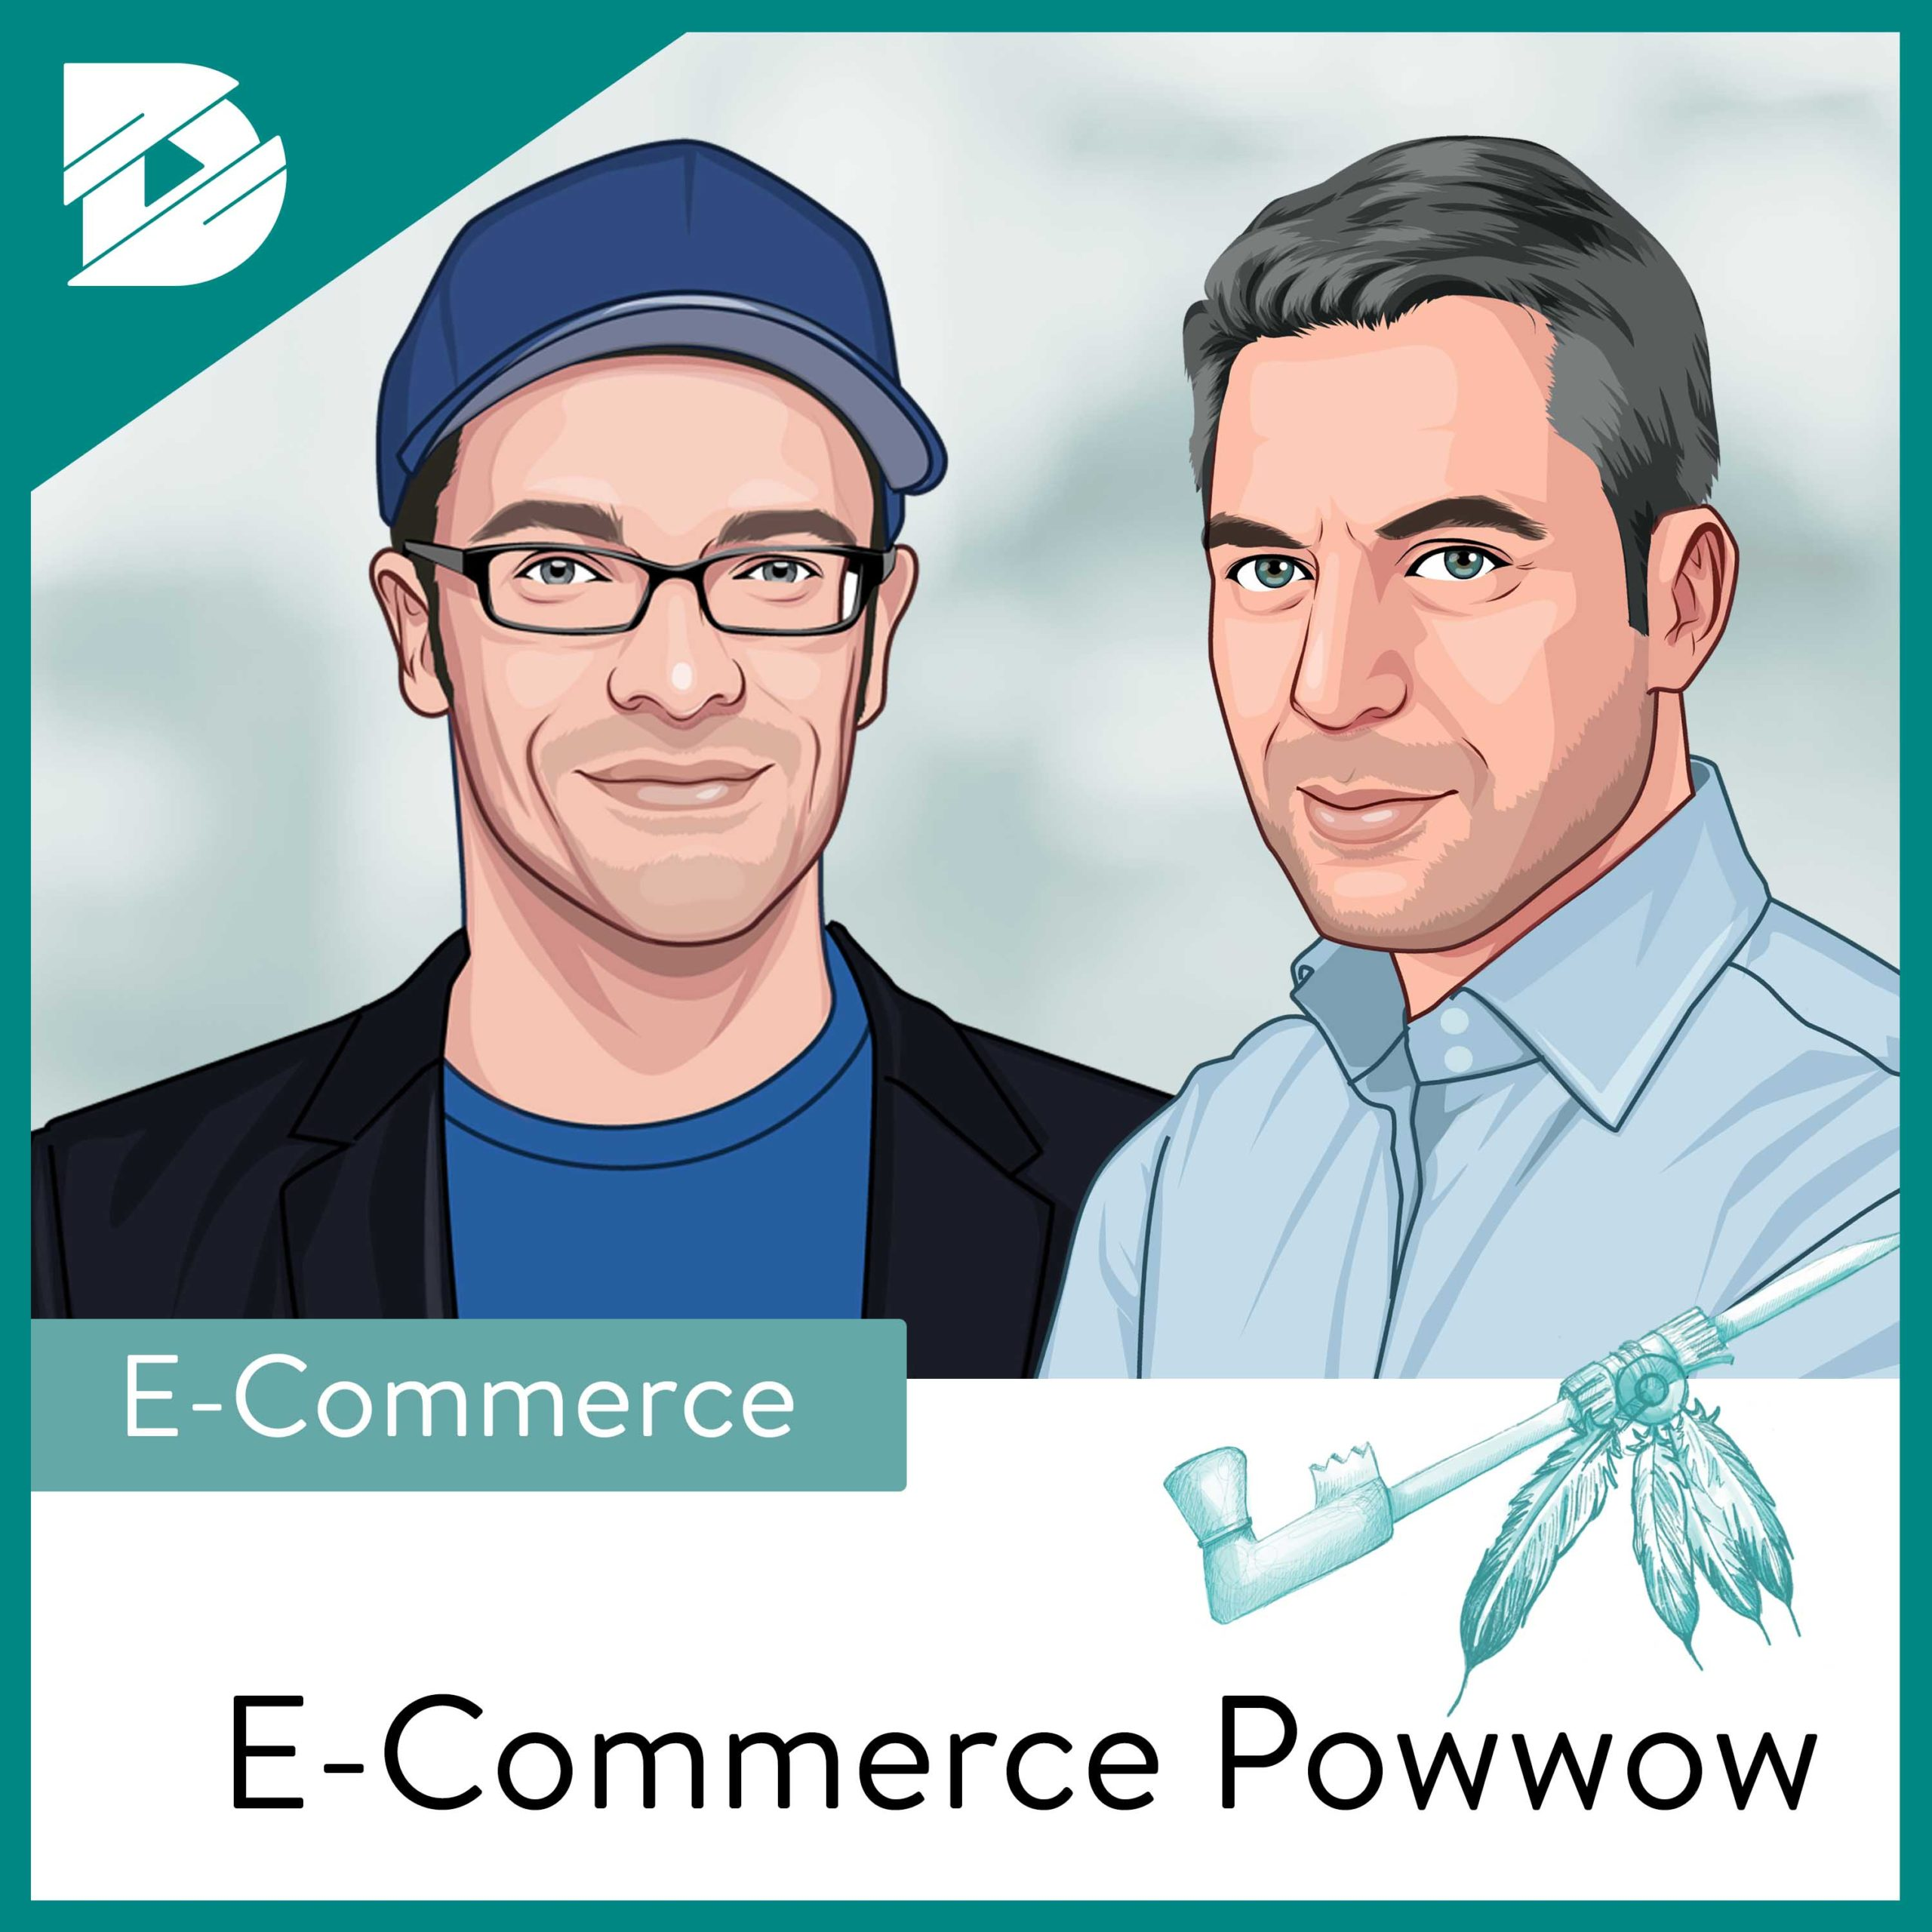 E-Commerce Powwow